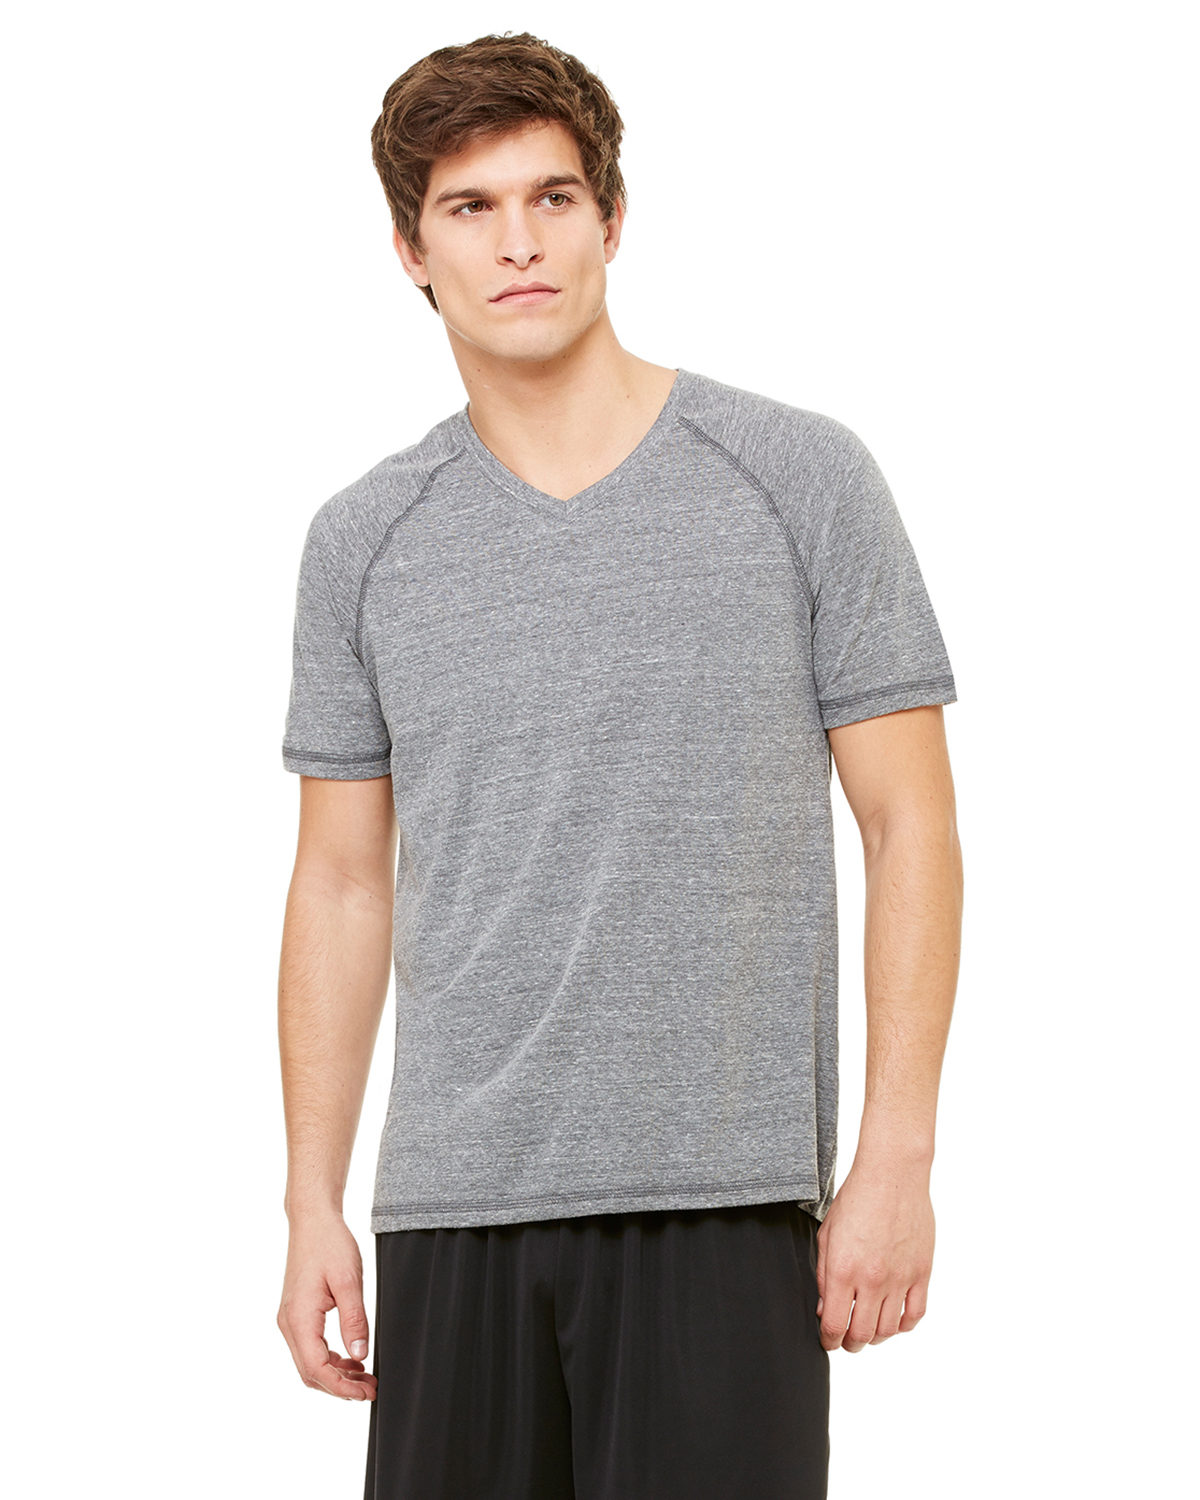 Men's Performance Triblend Short-Sleeve V-Neck T-Shirt